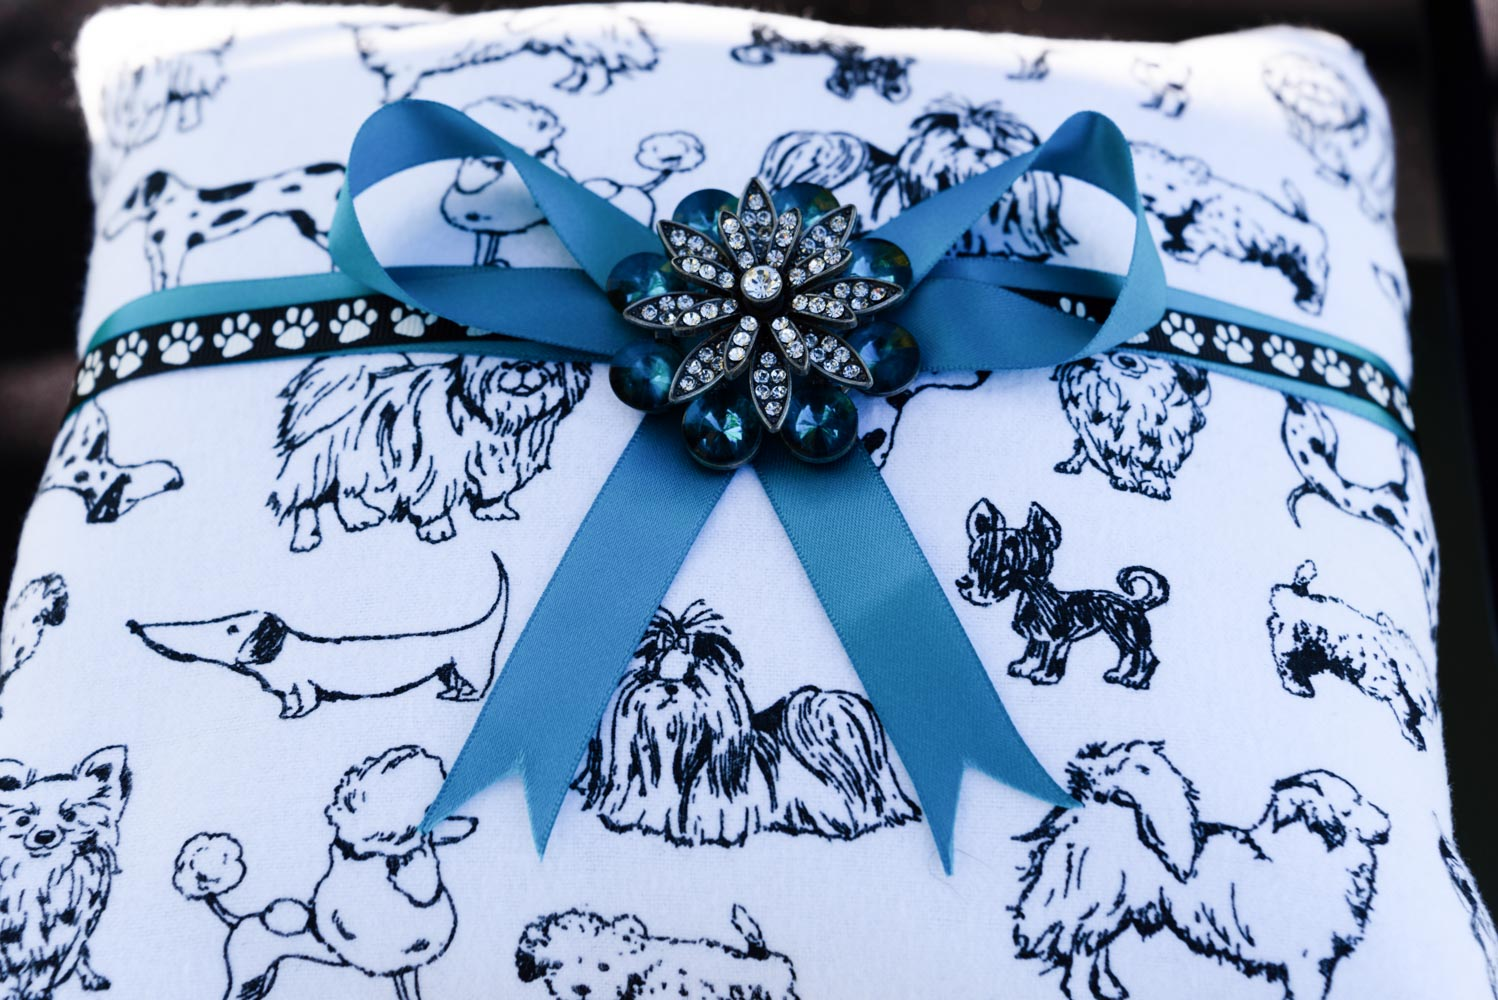 White ring bearer's pillow, with black drwings of dogs, tied with blue ribbon.